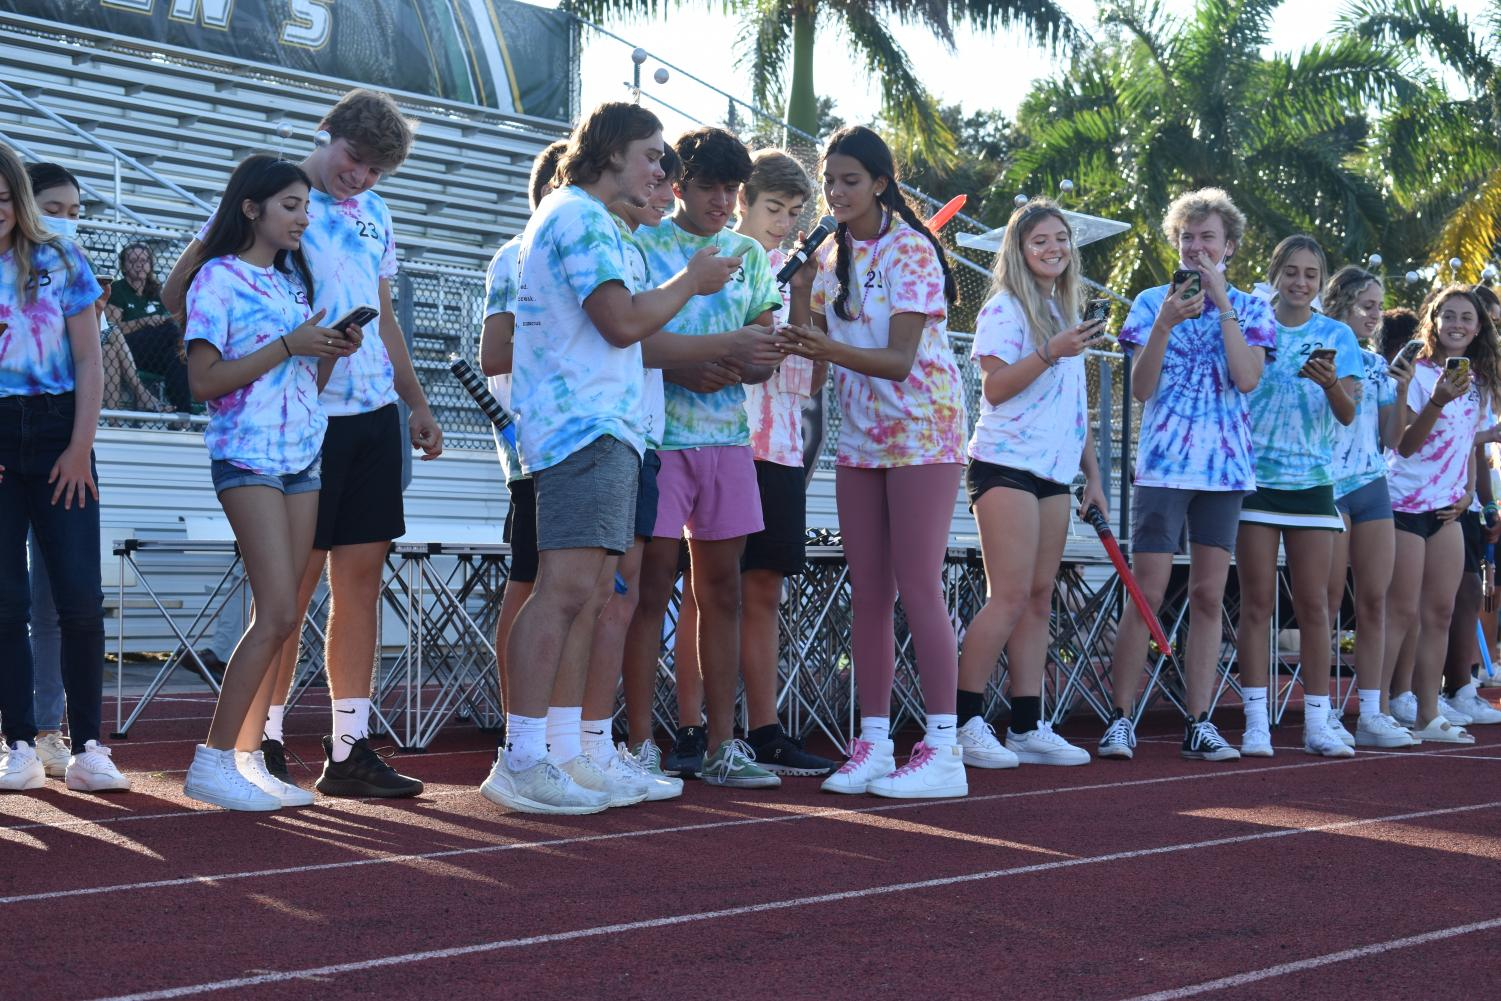 Homecoming+week%3A+Float+activity+photo+gallery